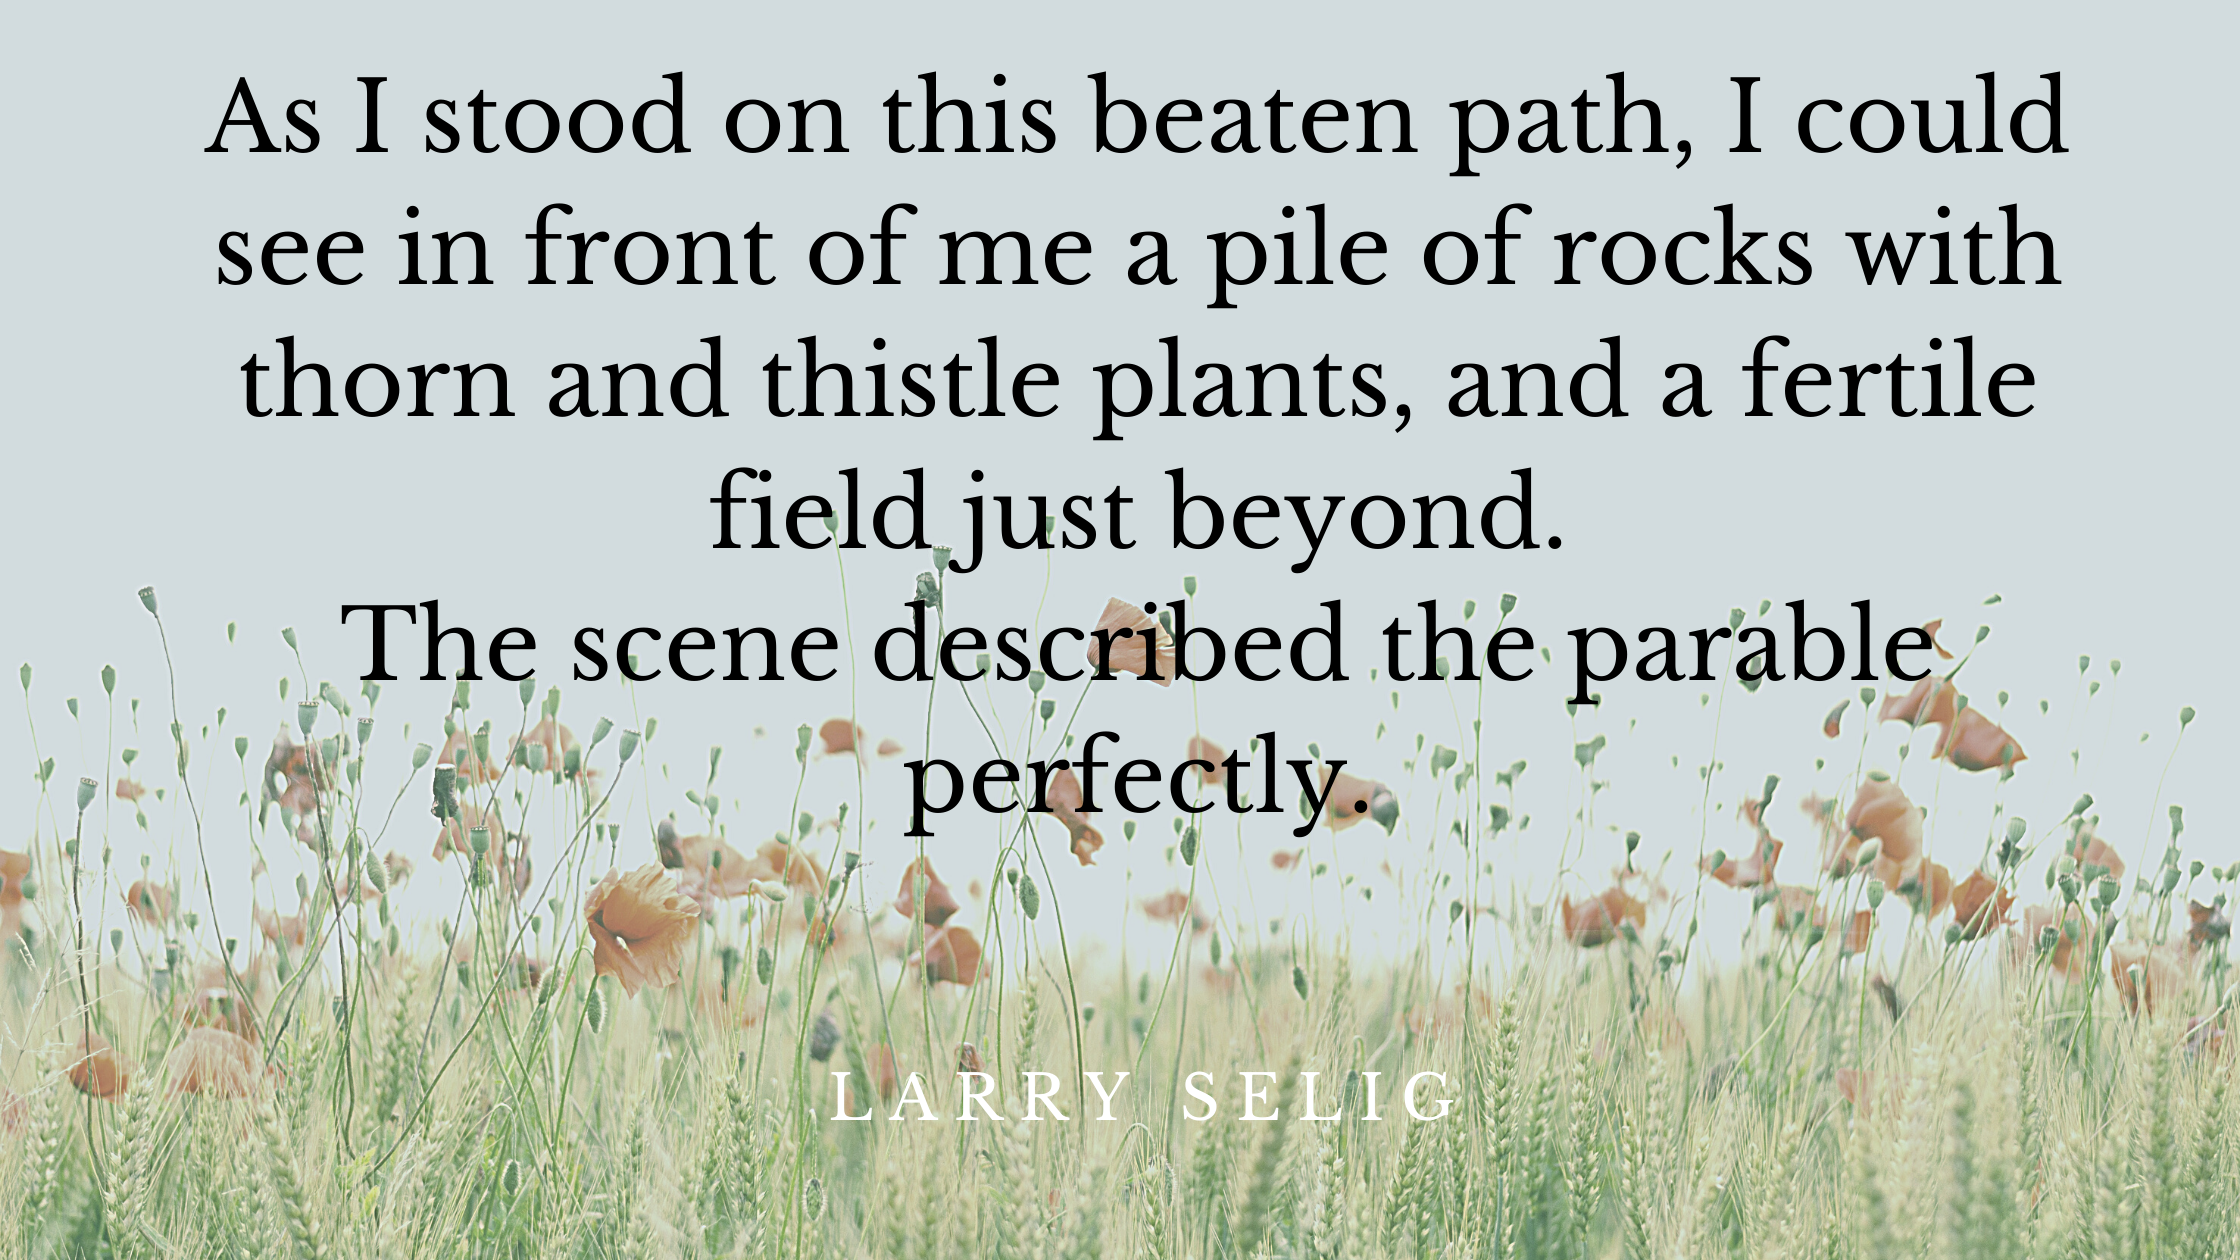 As I stood on this beaten path, I could see in front of me a pile of rocks with thorn and thistle plants, and a fertile field just beyond. The scene d